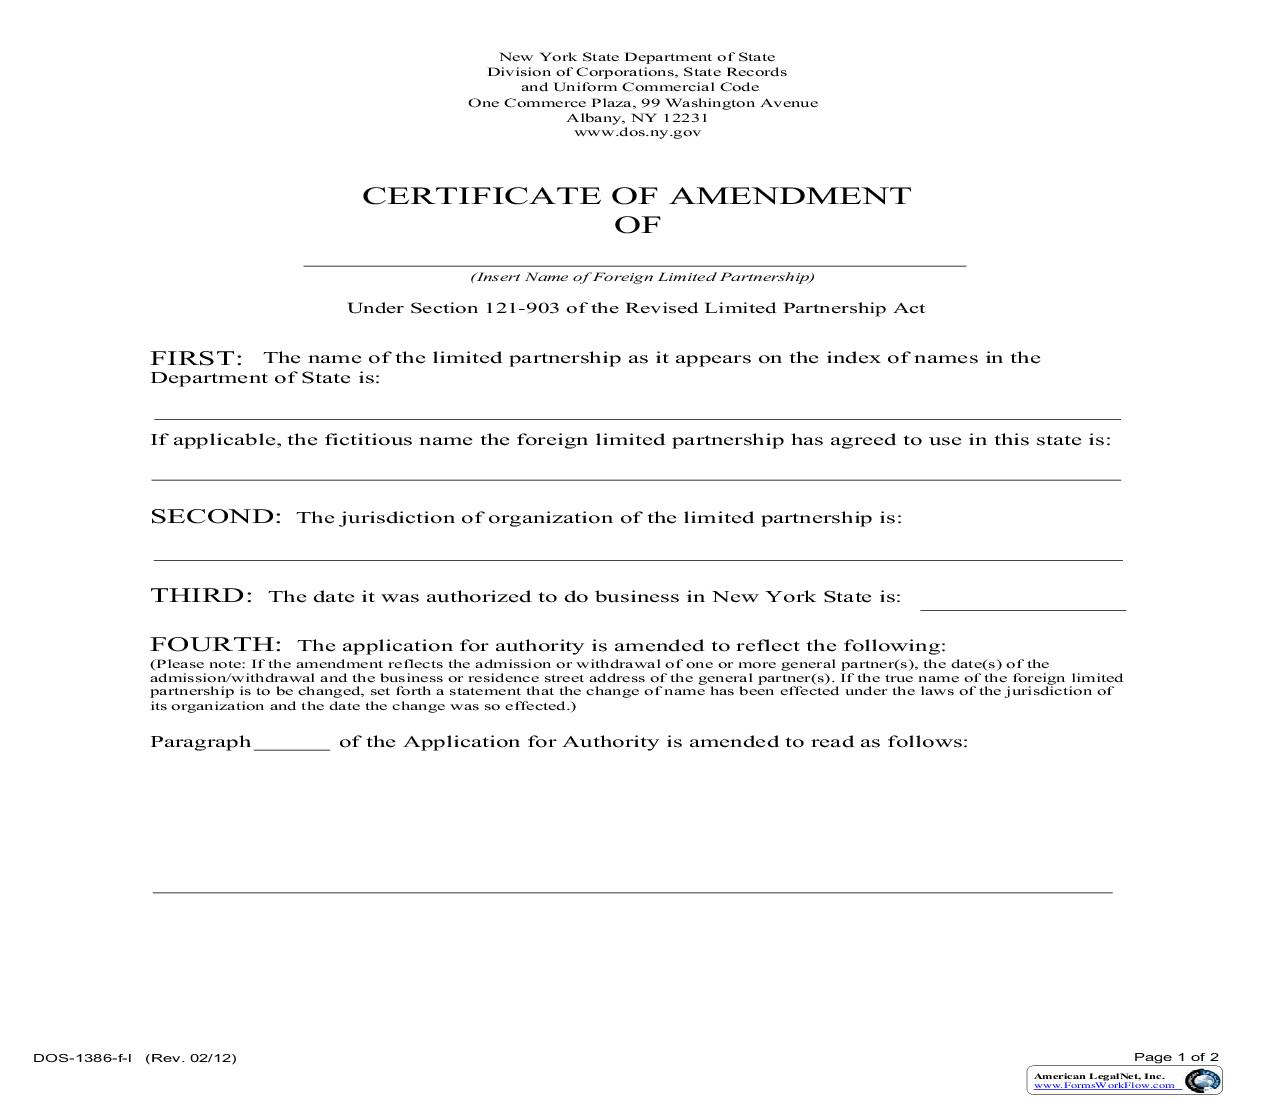 Certificate Of Amendment (Foreign Limited Partnership) {DOS-1386-f-l}   Pdf Fpdf Doc Docx   New York